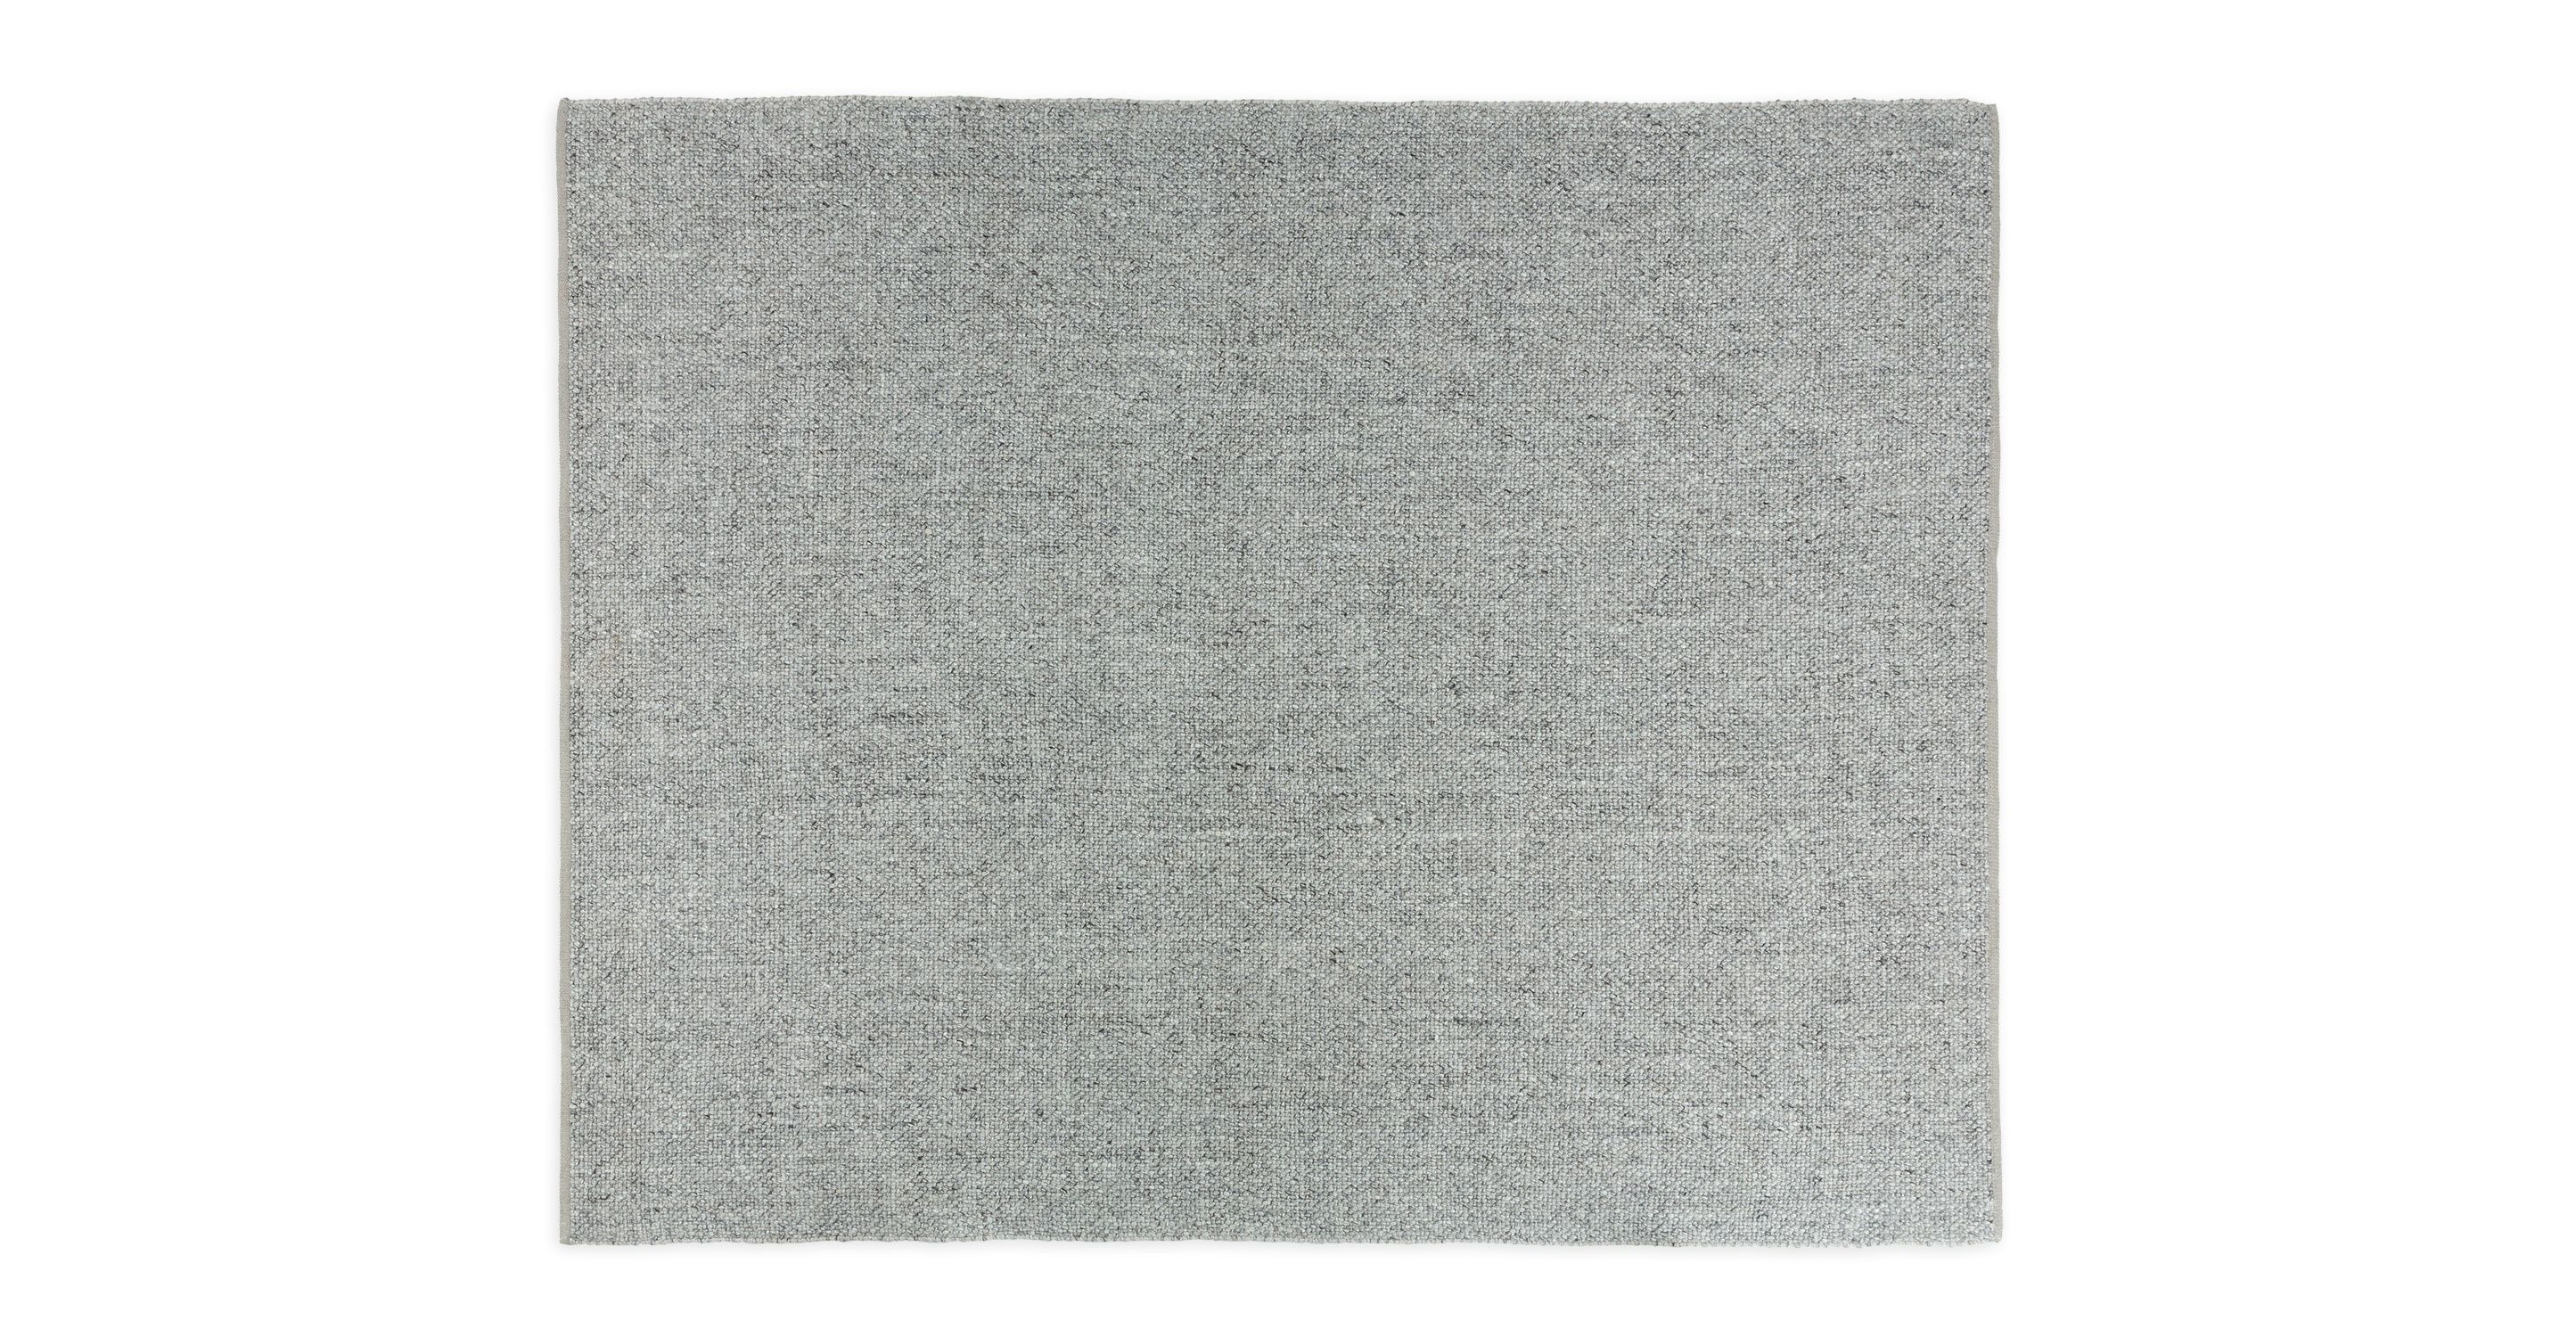 texa fog gray rug 8 x 10 8 x 10 rugs article modern mid century and scandinavian furniture